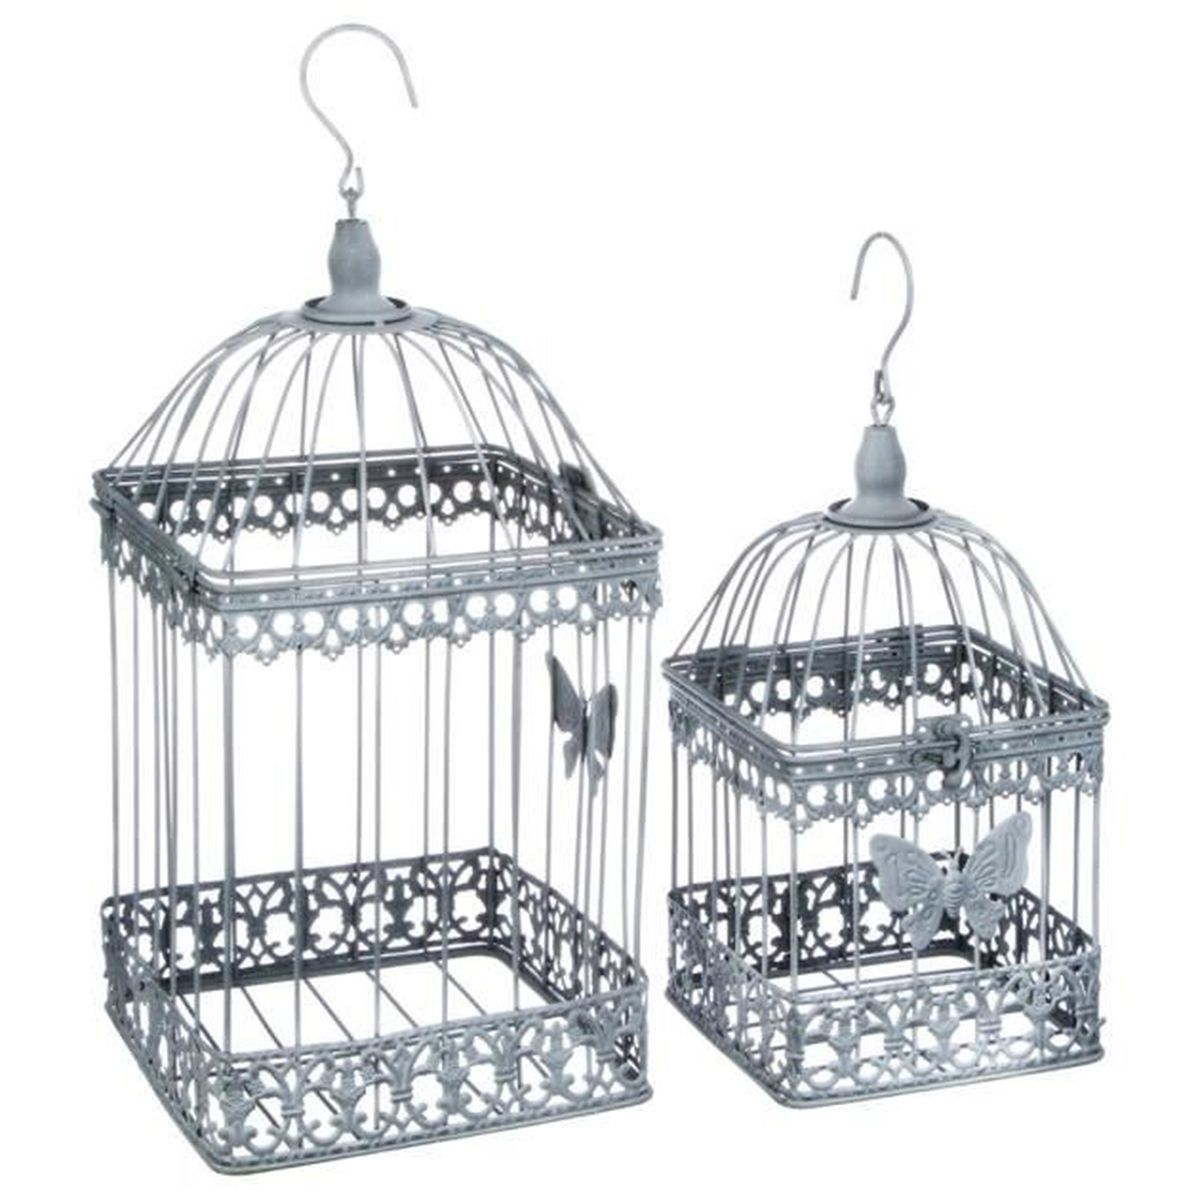 Lot de 2 cages oiseaux d coratives style fer forg gris patin gris achat vente for Cages a oiseaux decoratives